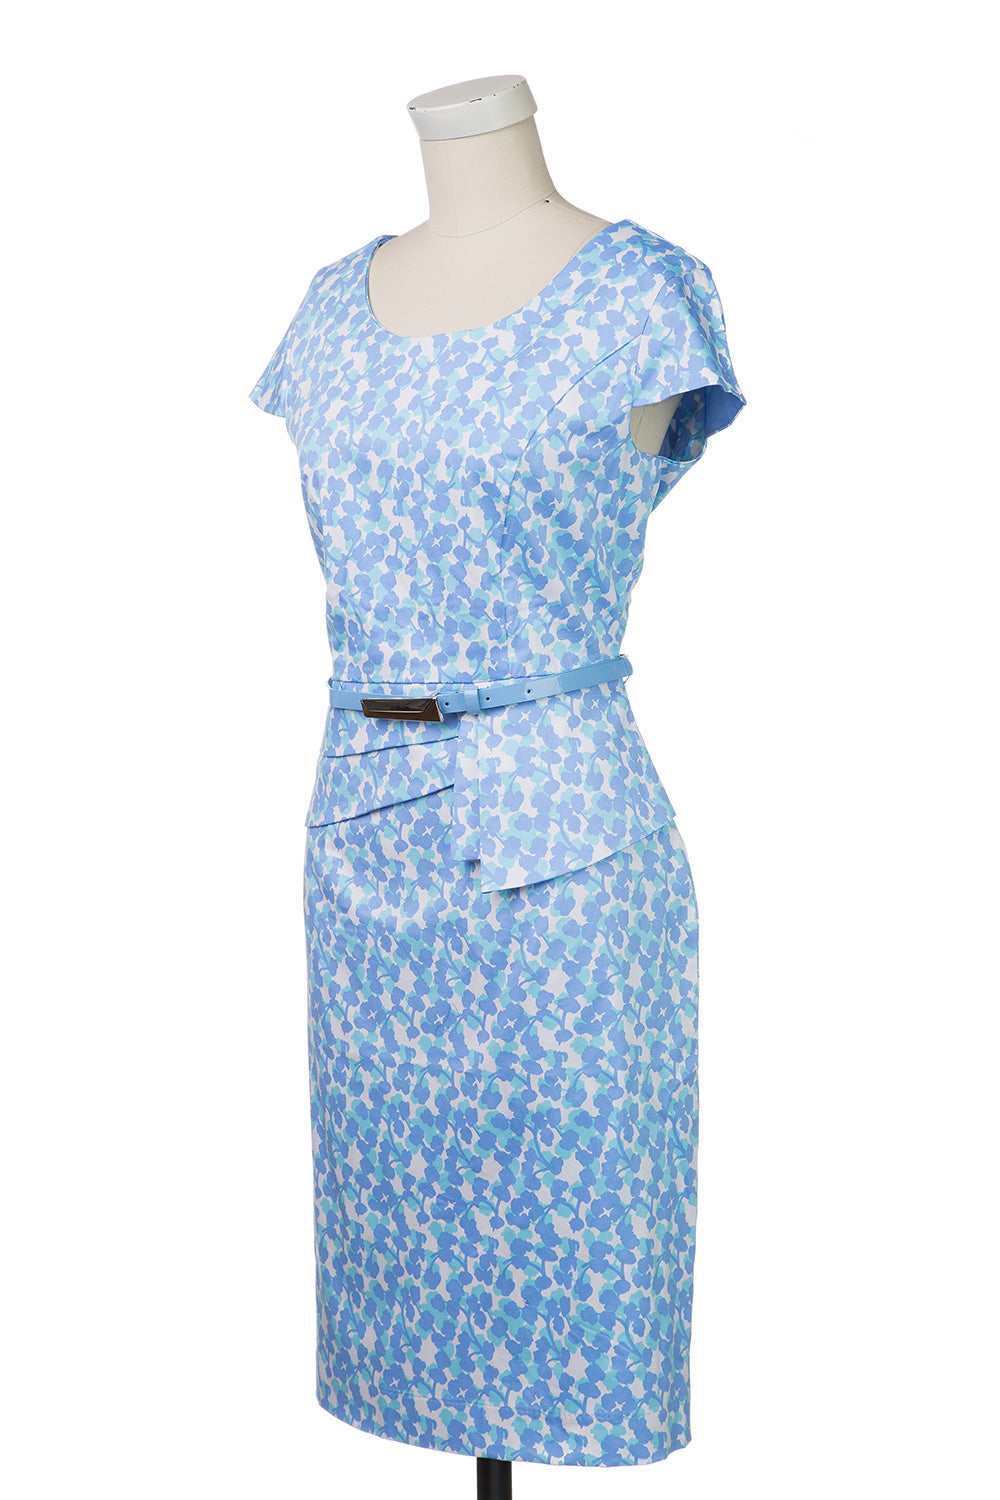 Type 1 Playful Periwinkle Dress